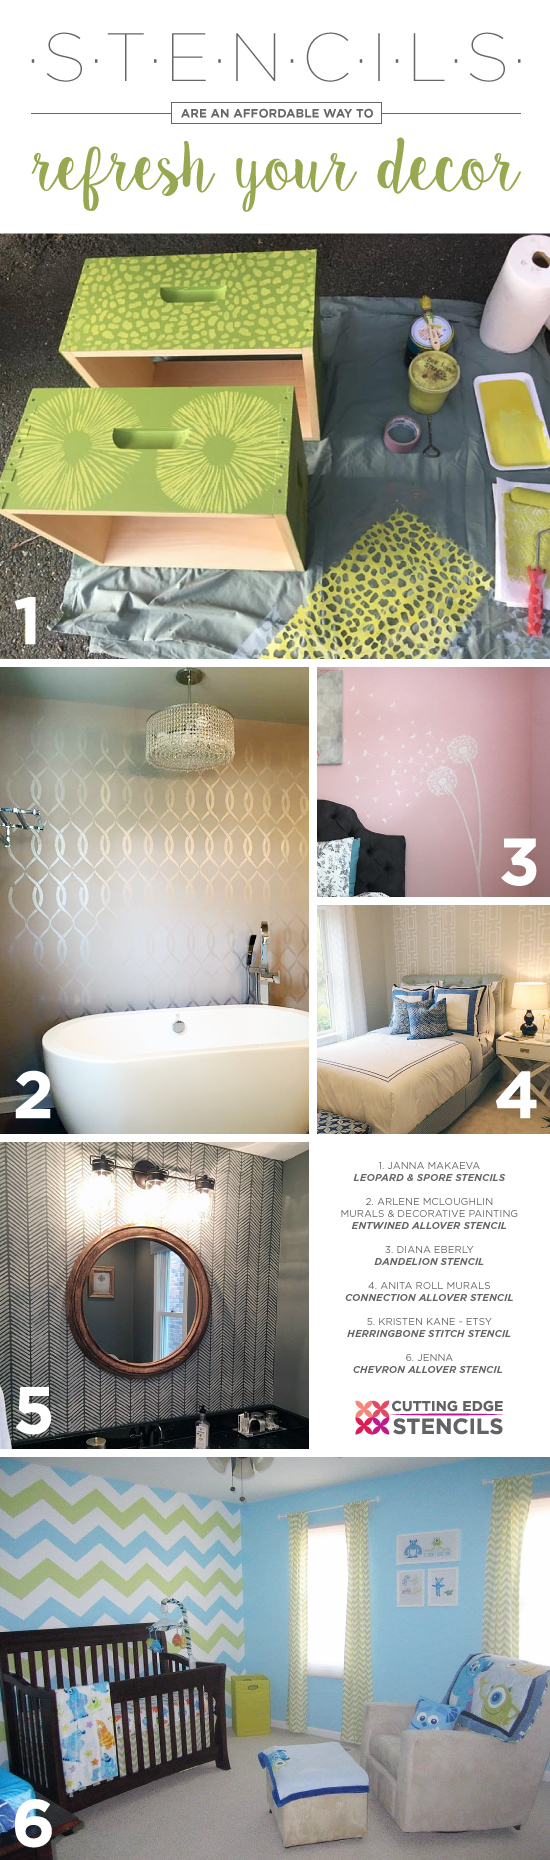 Cutting Edge Stencils shares DIY home decorating ideas using wall and craft stencil patterns. http://www.cuttingedgestencils.com/stencil-patterns-featured-stencils.html